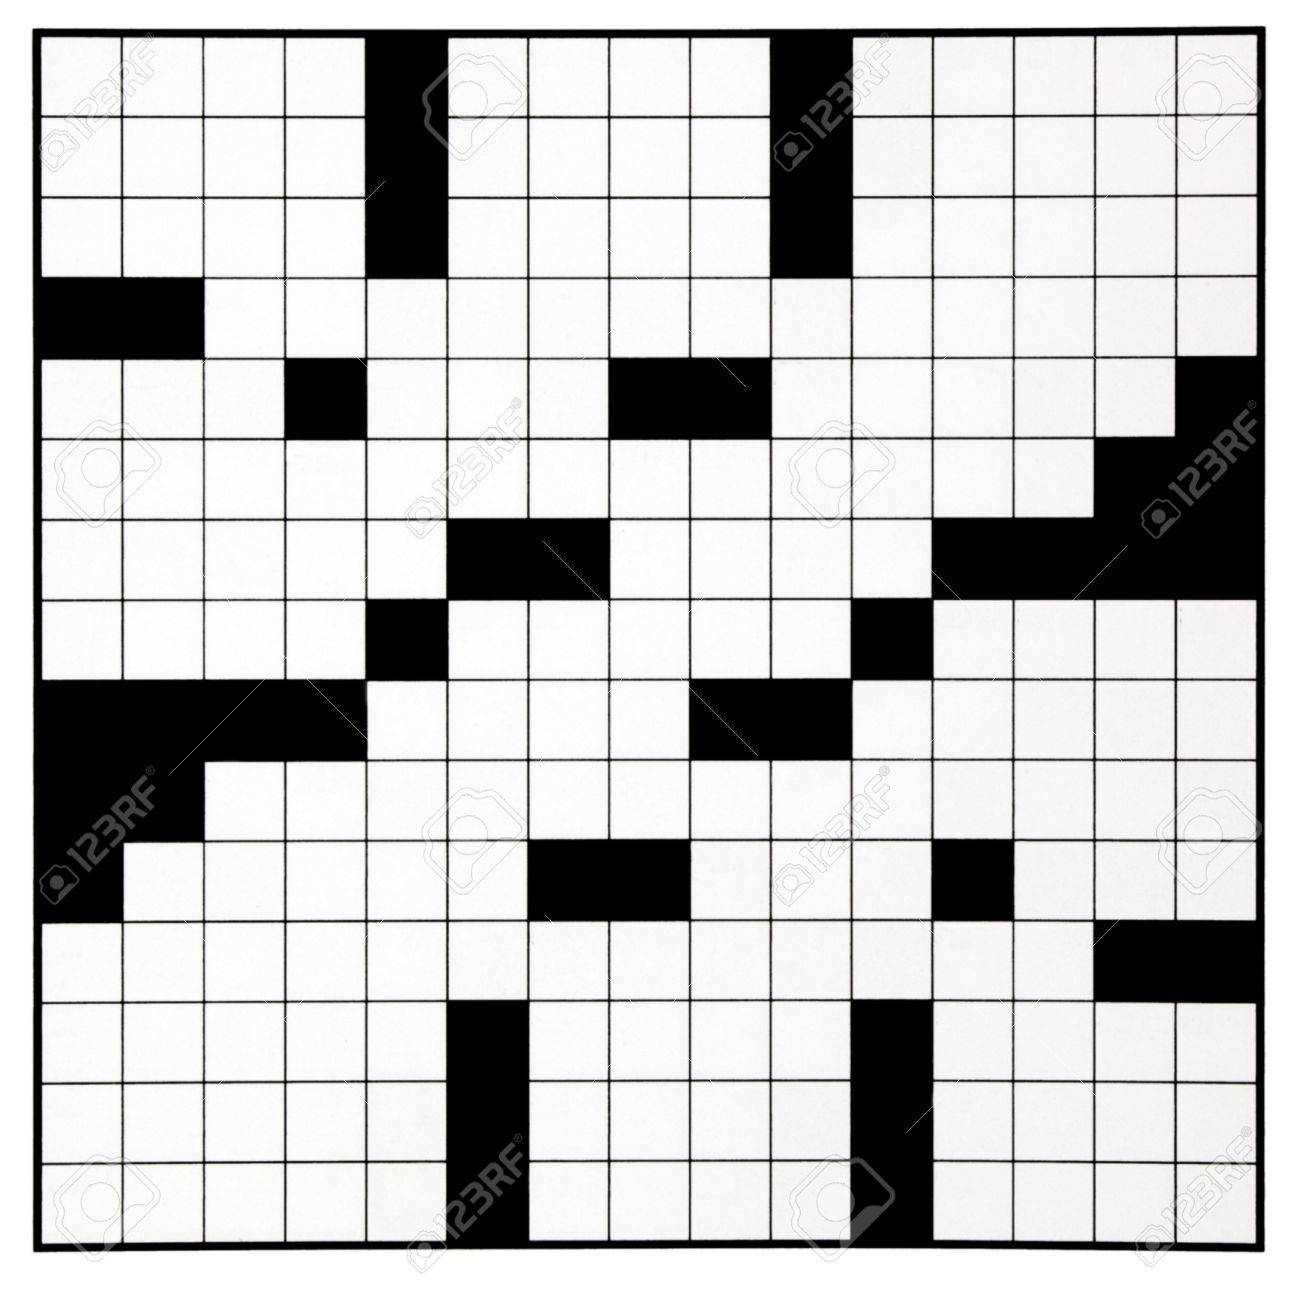 Blank Crossword Puzzle Grid - Karis.sticken.co - Printable Crossword Grid